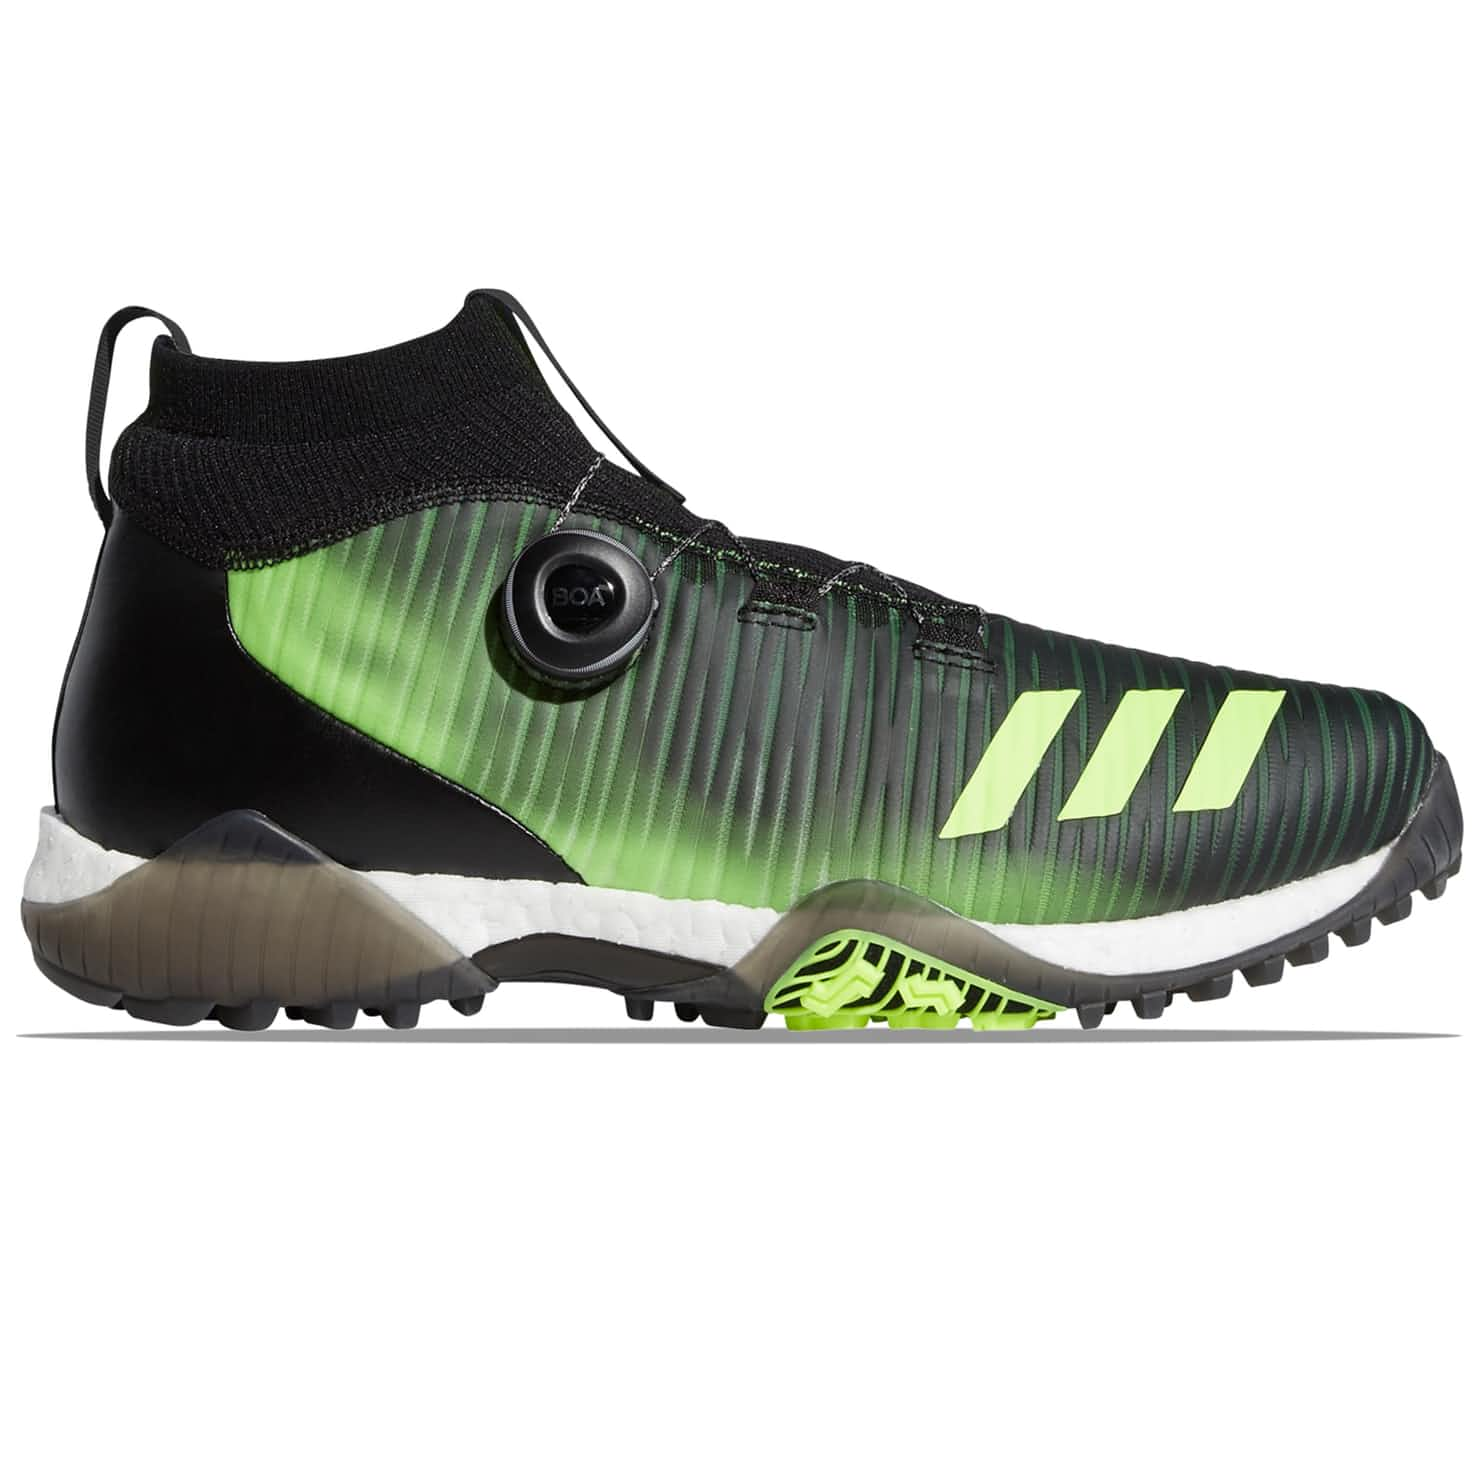 CODECHAOS BOA Shoes Black/Signal Green/White - SS20